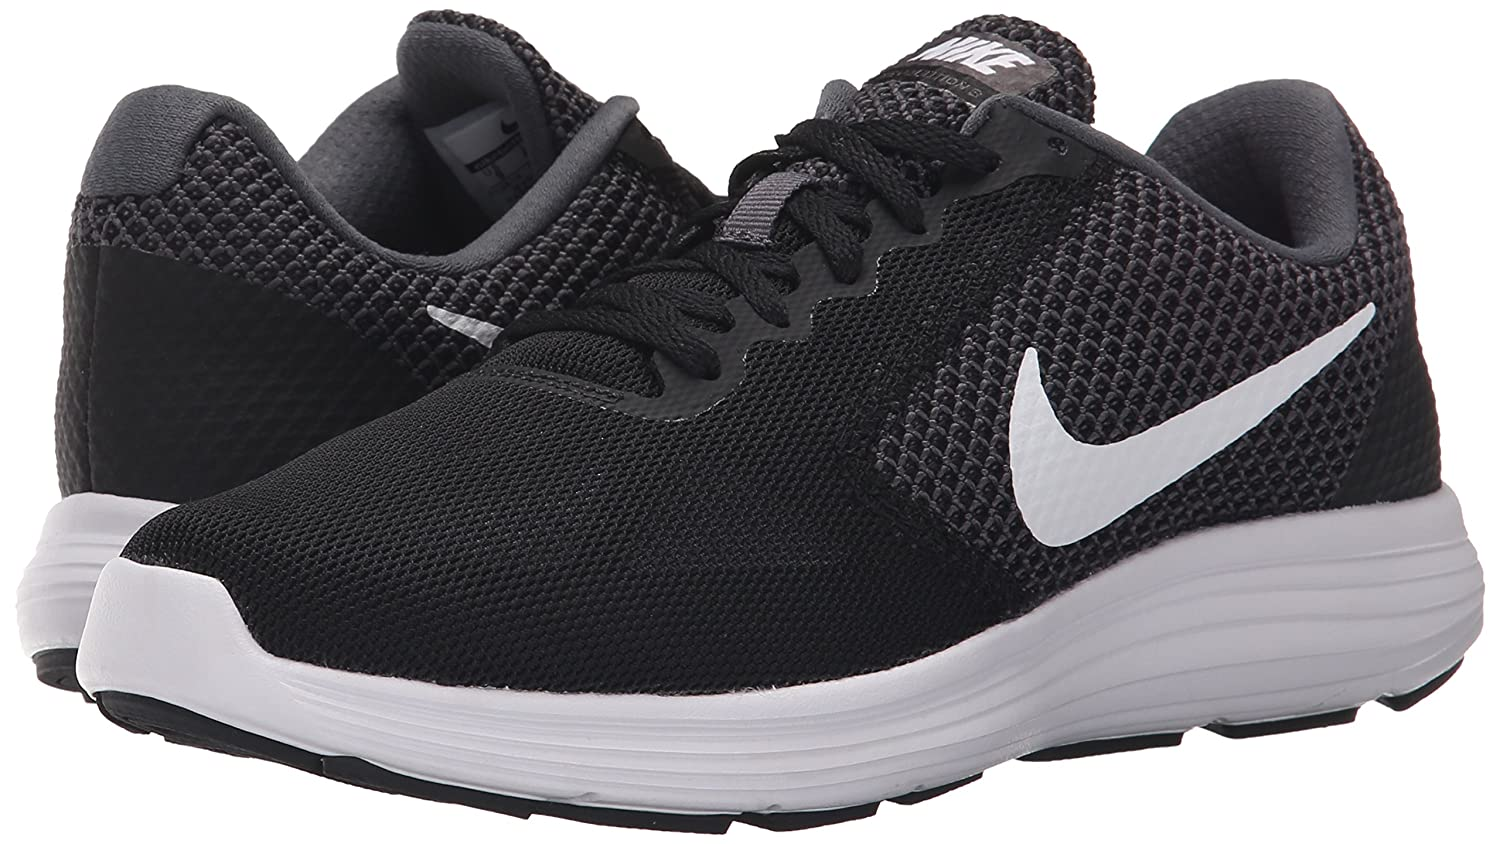 NIKE Women's Revolution 3 Running Shoe B010RSGO3Q 7 B(M) US|Dark Grey/White/Black